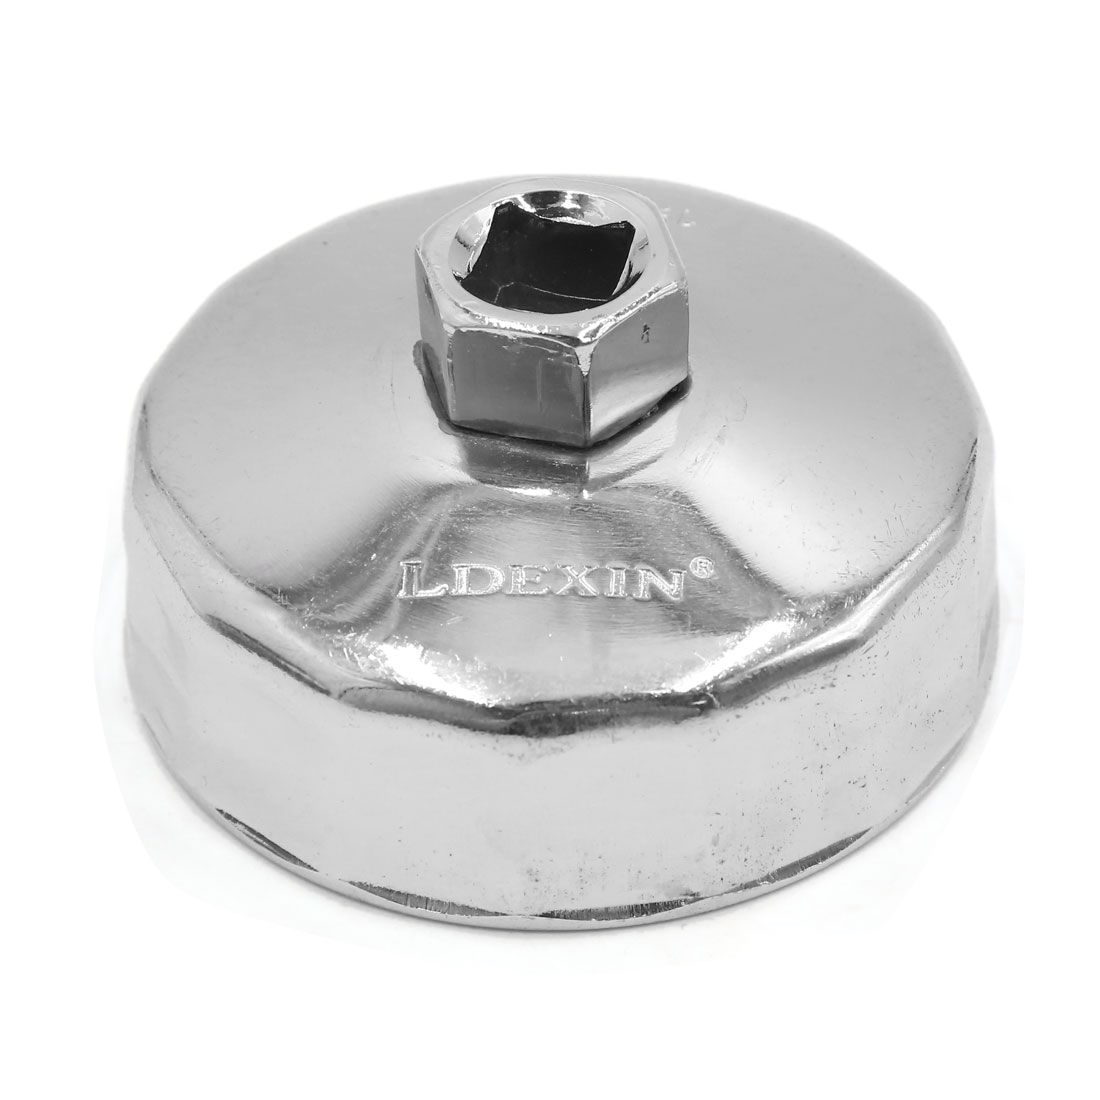 Uxcell a17042500ux0690 79mm Inner Dia 15 Flute Oil Filter Cap Wrench Socket Removal Tool for Auto Car